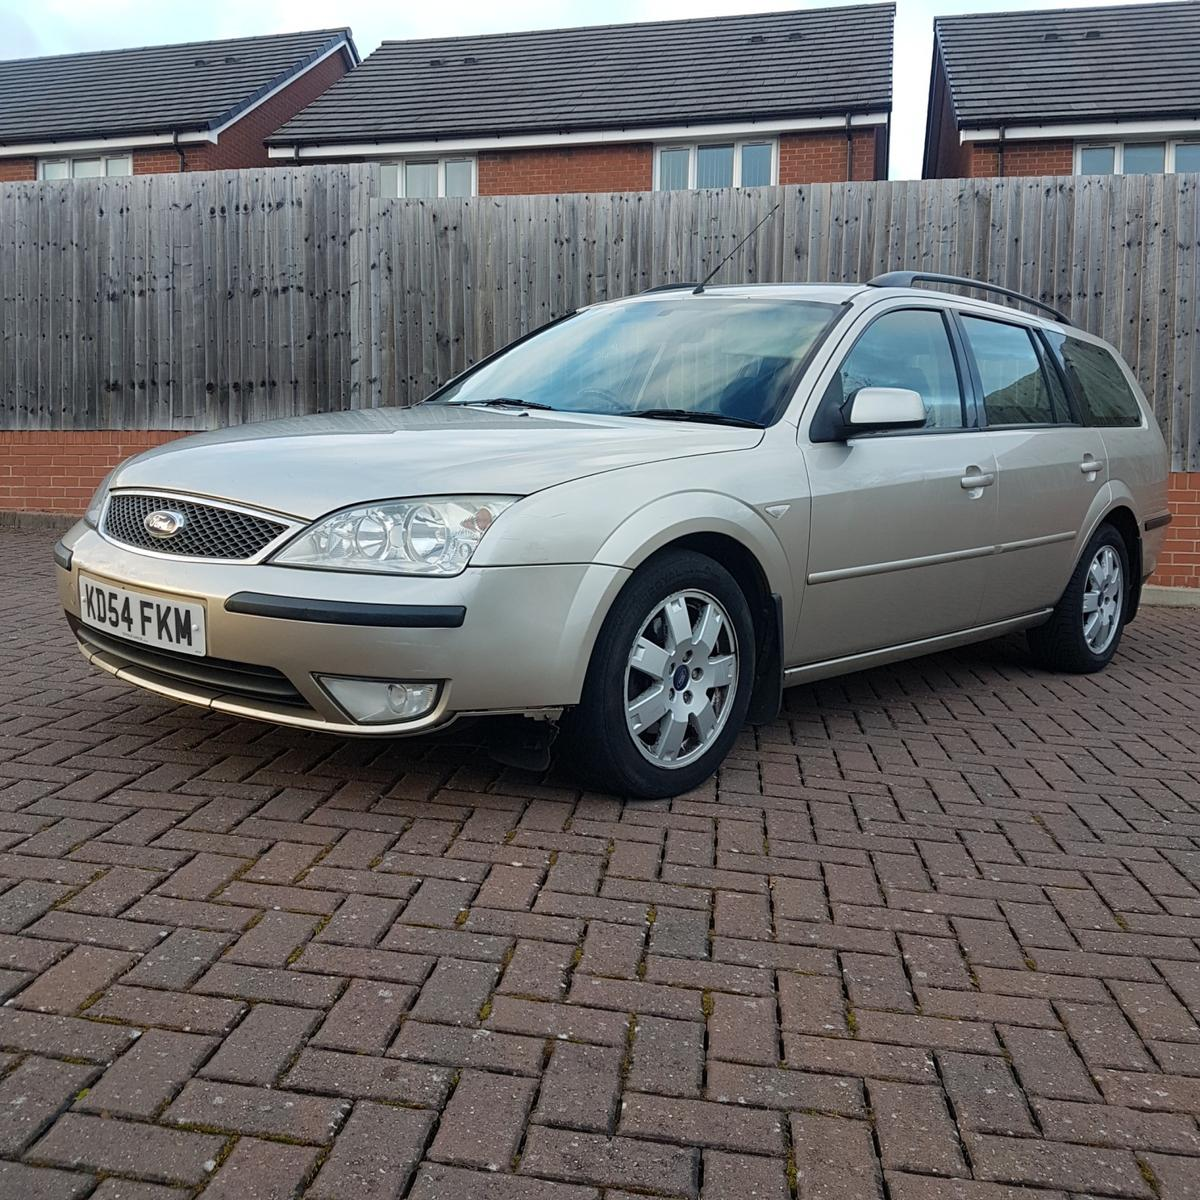 2005/54 ford mondeo 2 0tdci in DY1 Dudley for £320 00 for